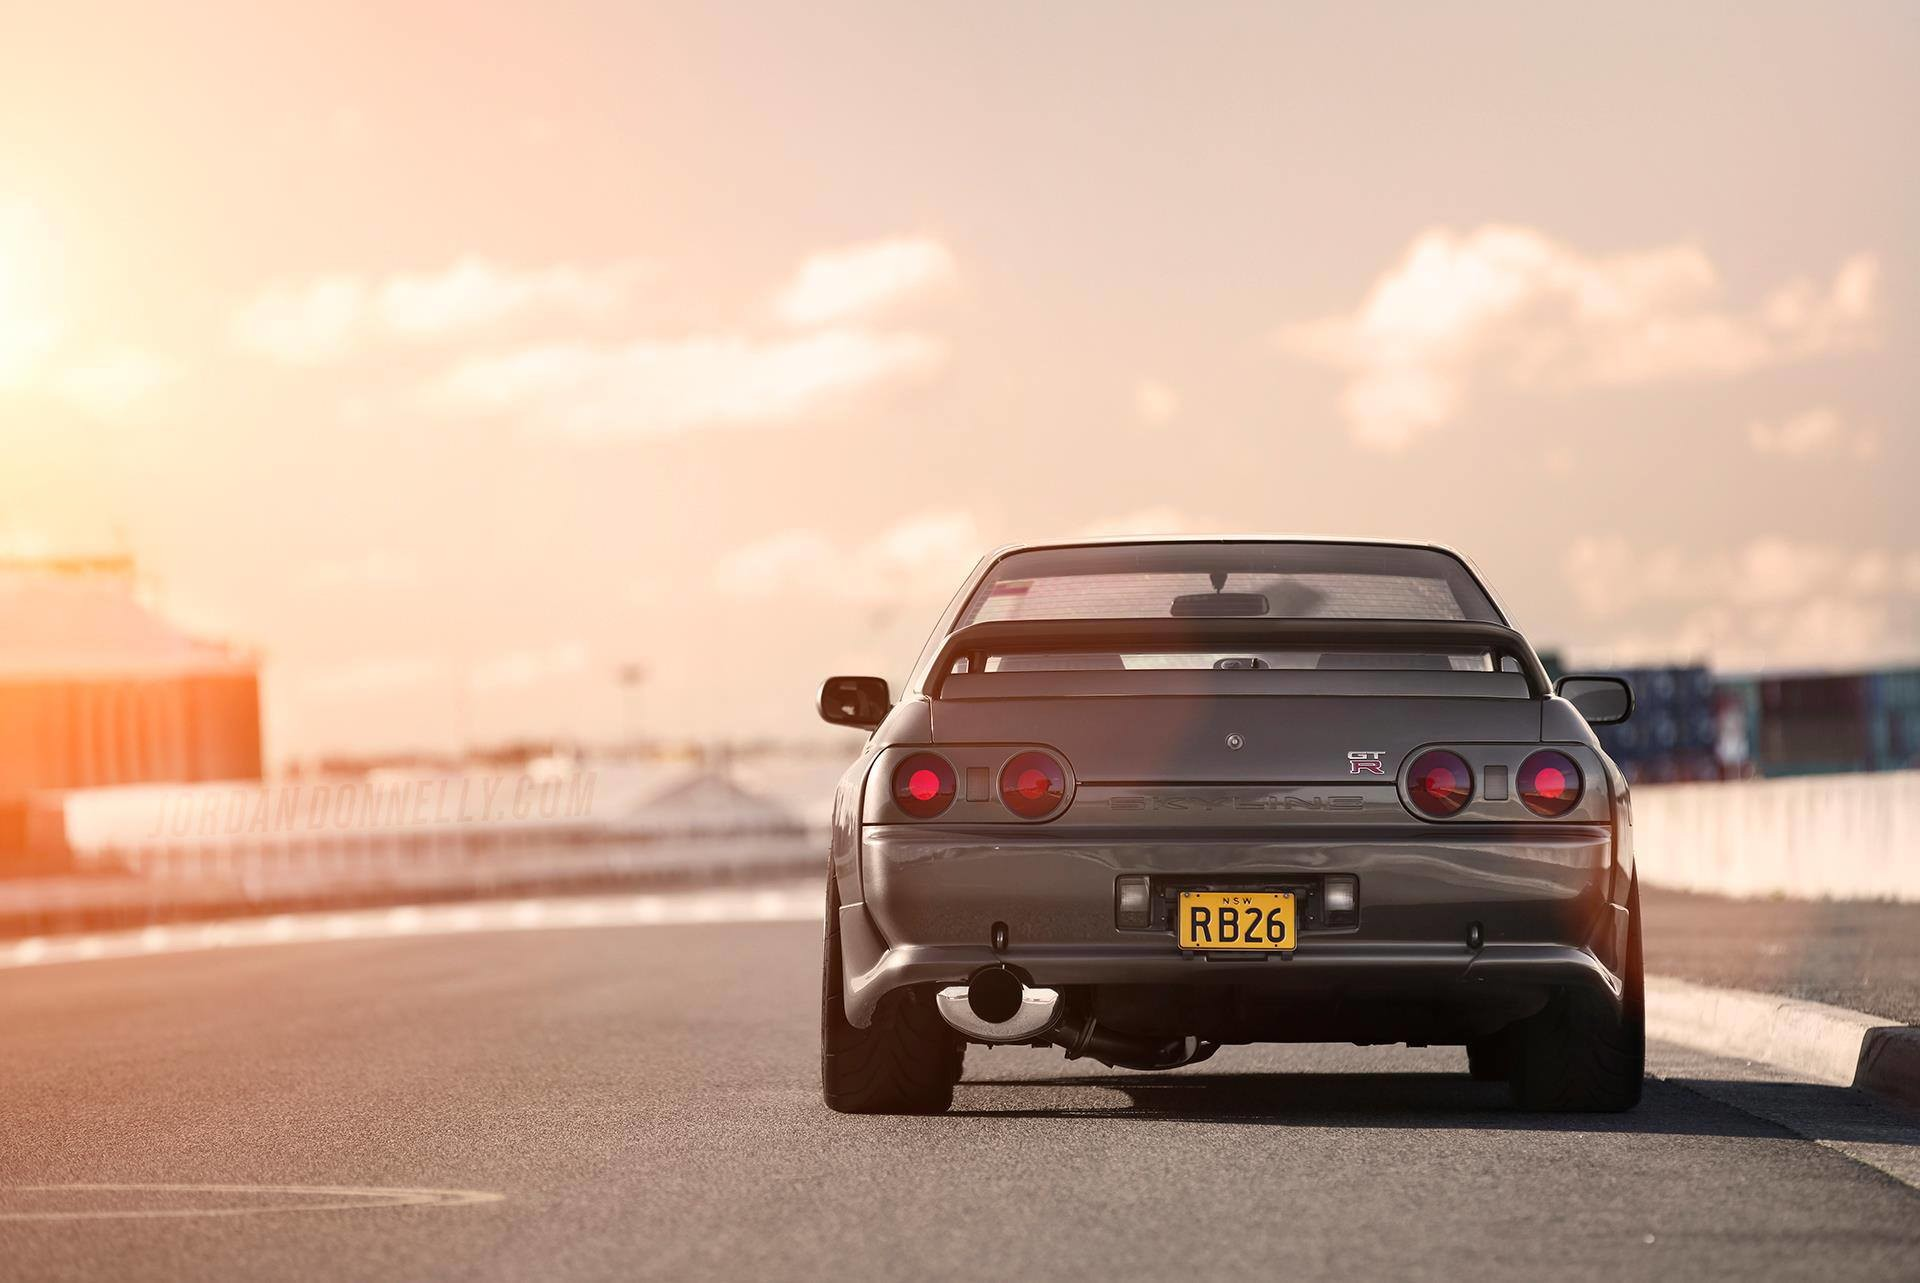 Skyline R32 Wallpapers 66 Images